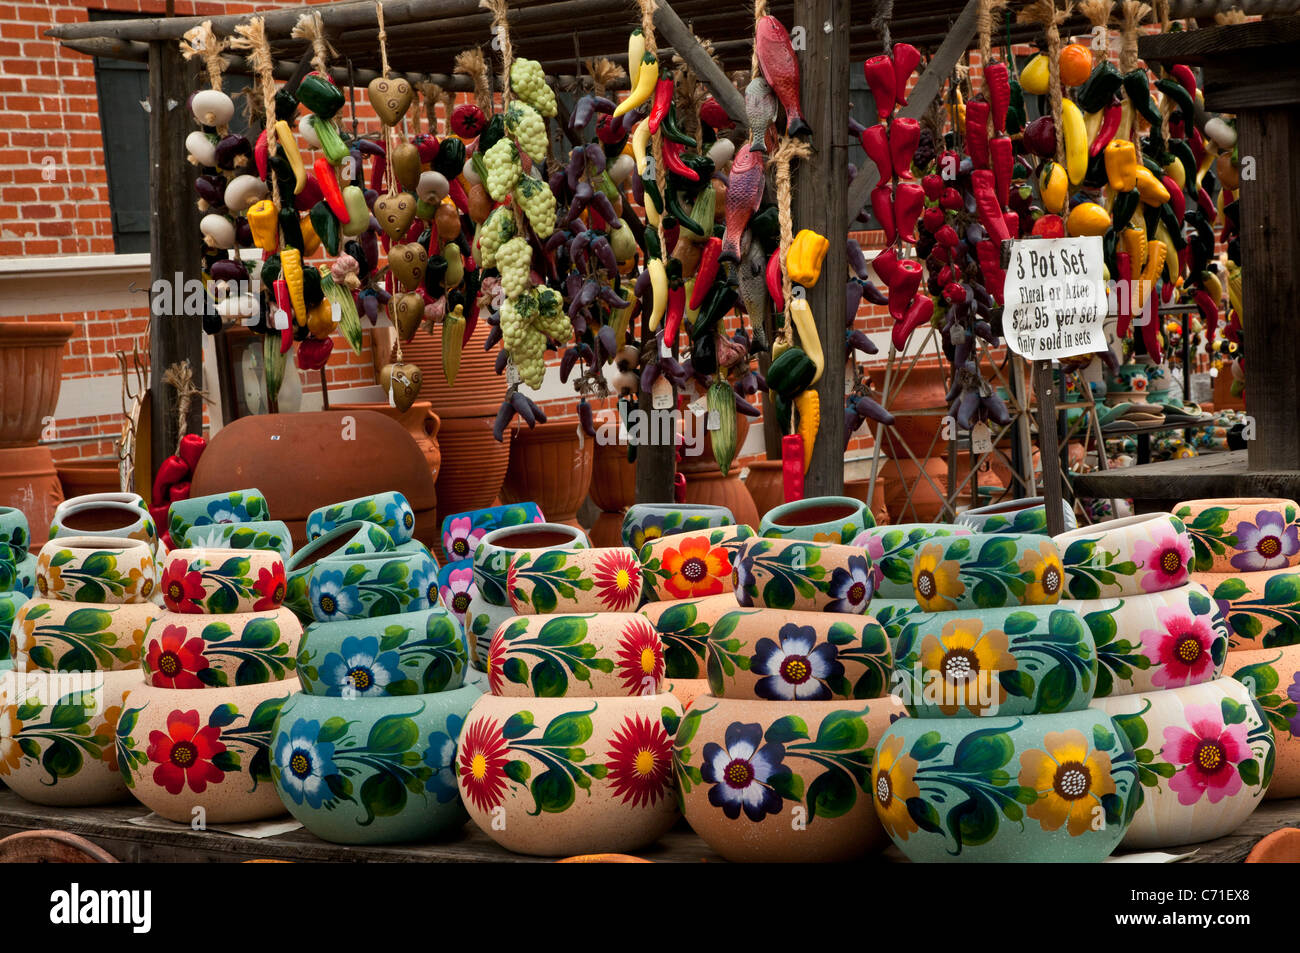 Pottery Store In Old Town San Diego Stock Photo Alamy